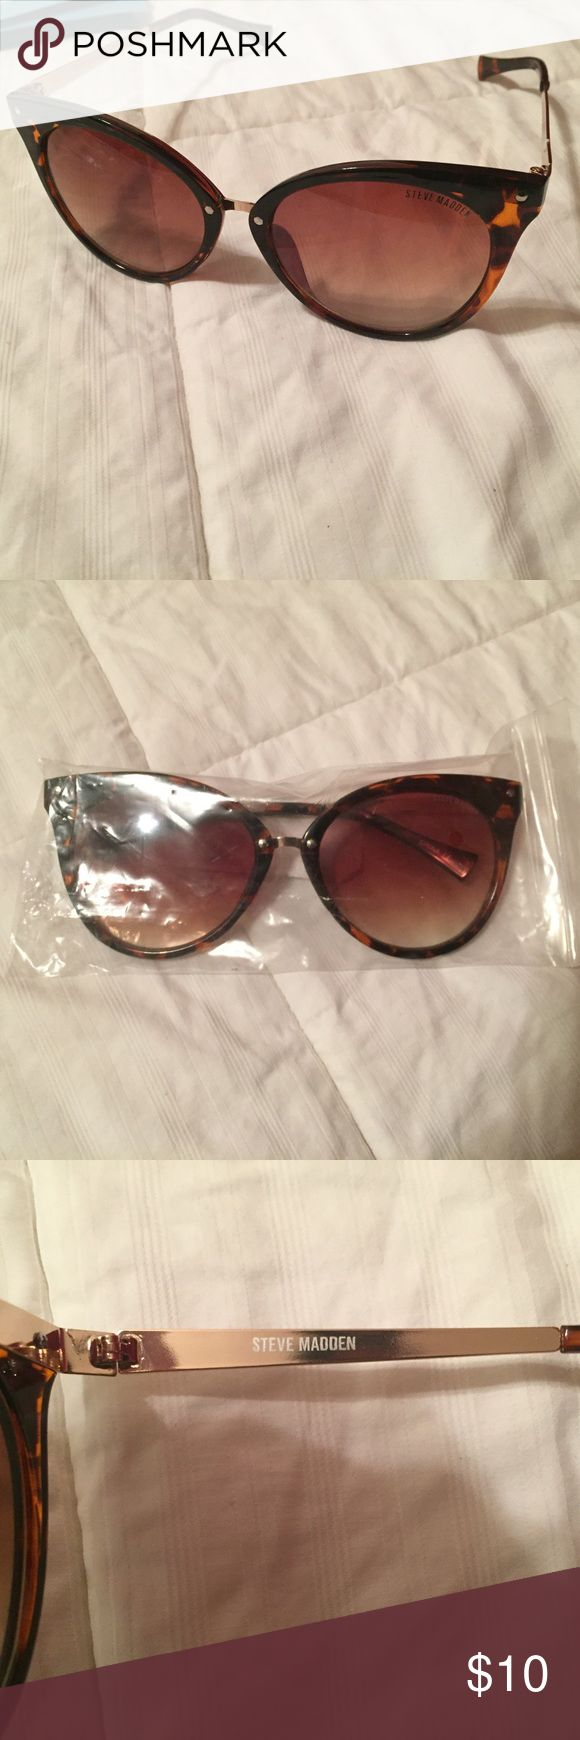 Brand new Steve Madden sunglasses Brand new cat eyed sunglasses Steve Madden Accessories Sunglasses